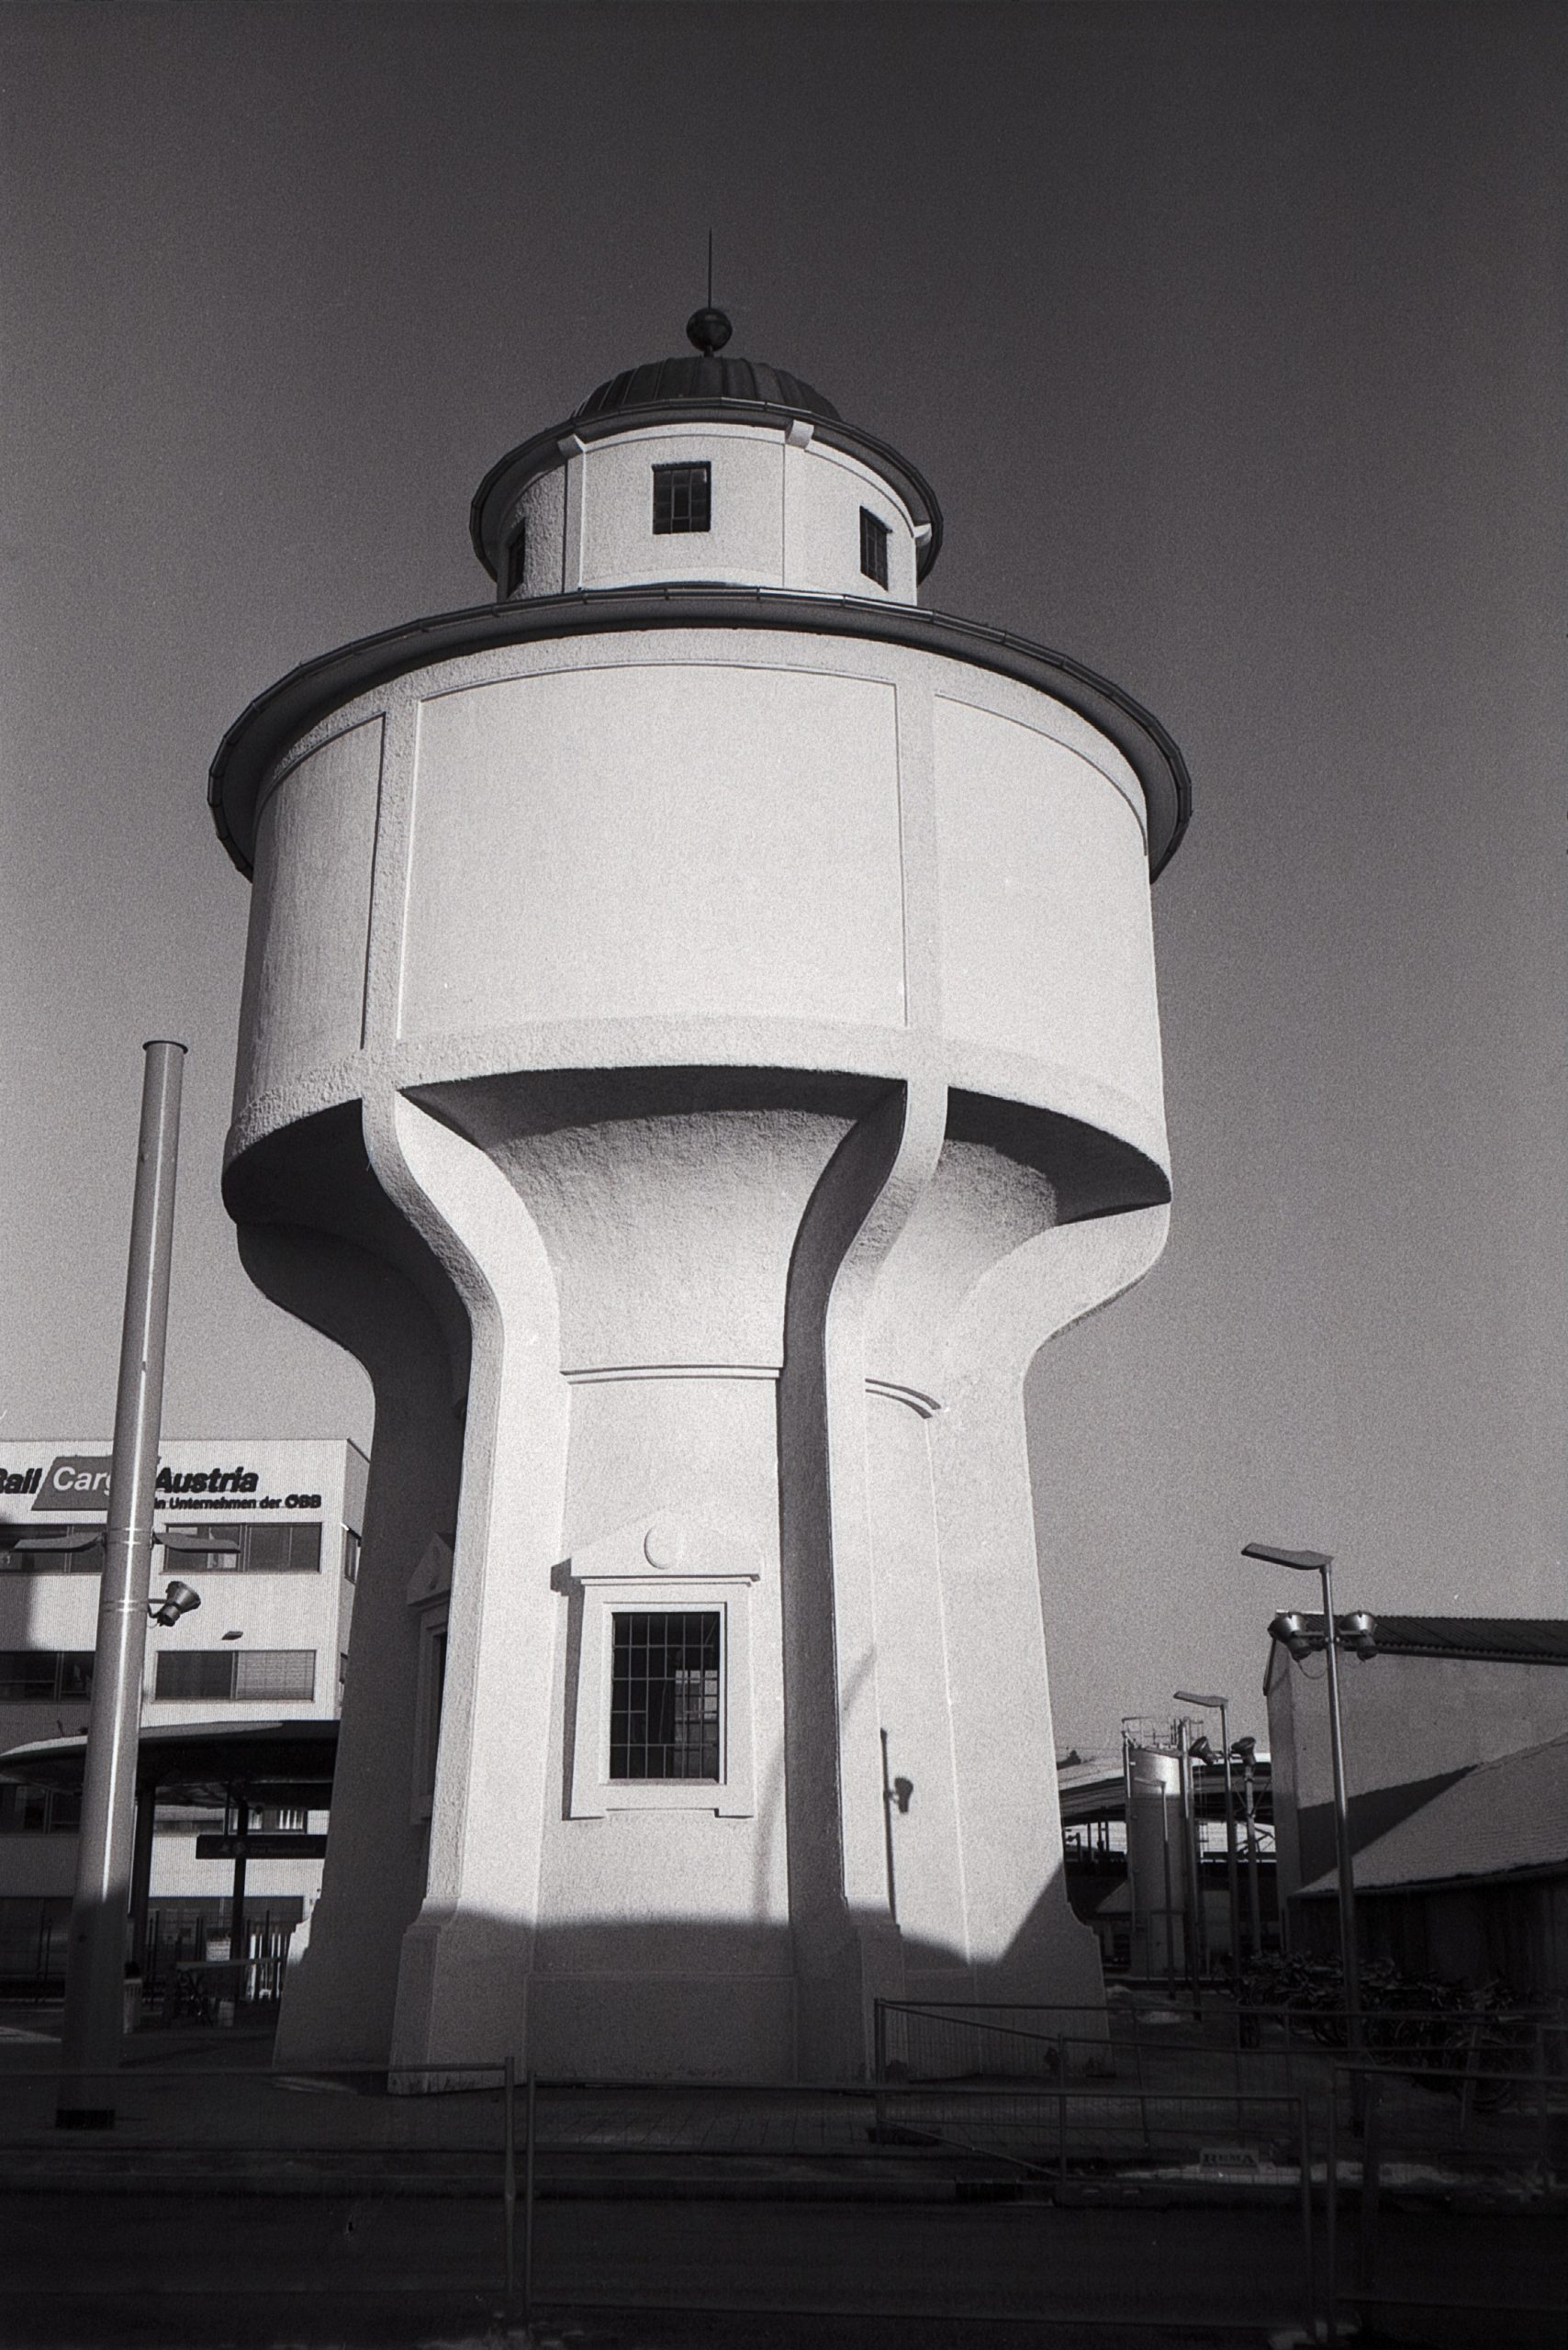 #017 Film per day – The old water tower, Bahnhof Graz